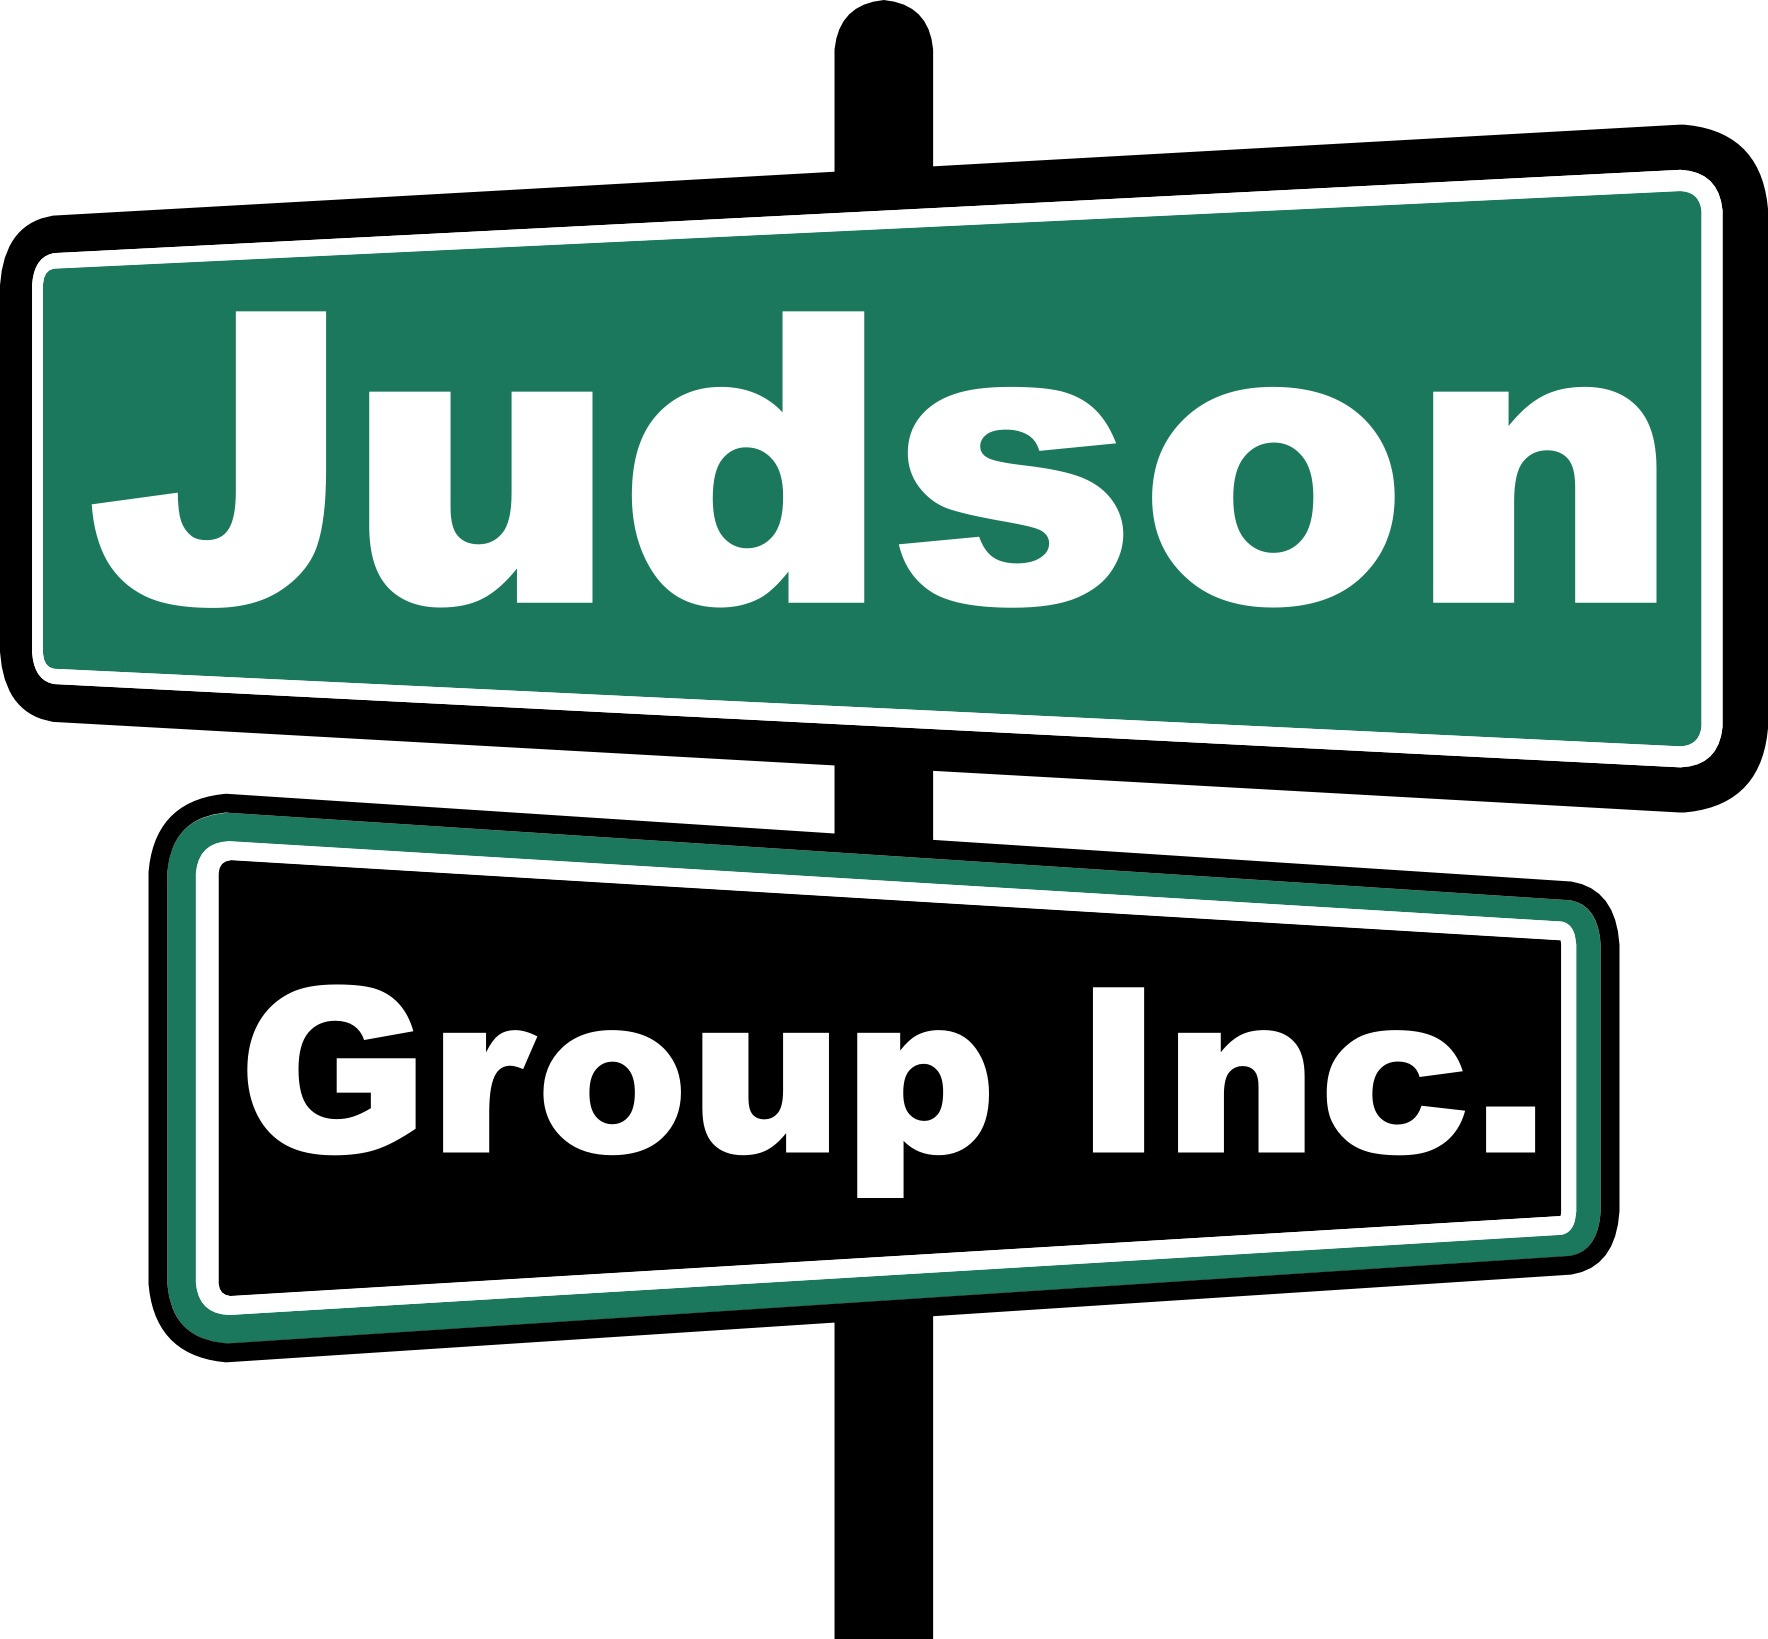 Judson Group Inc.